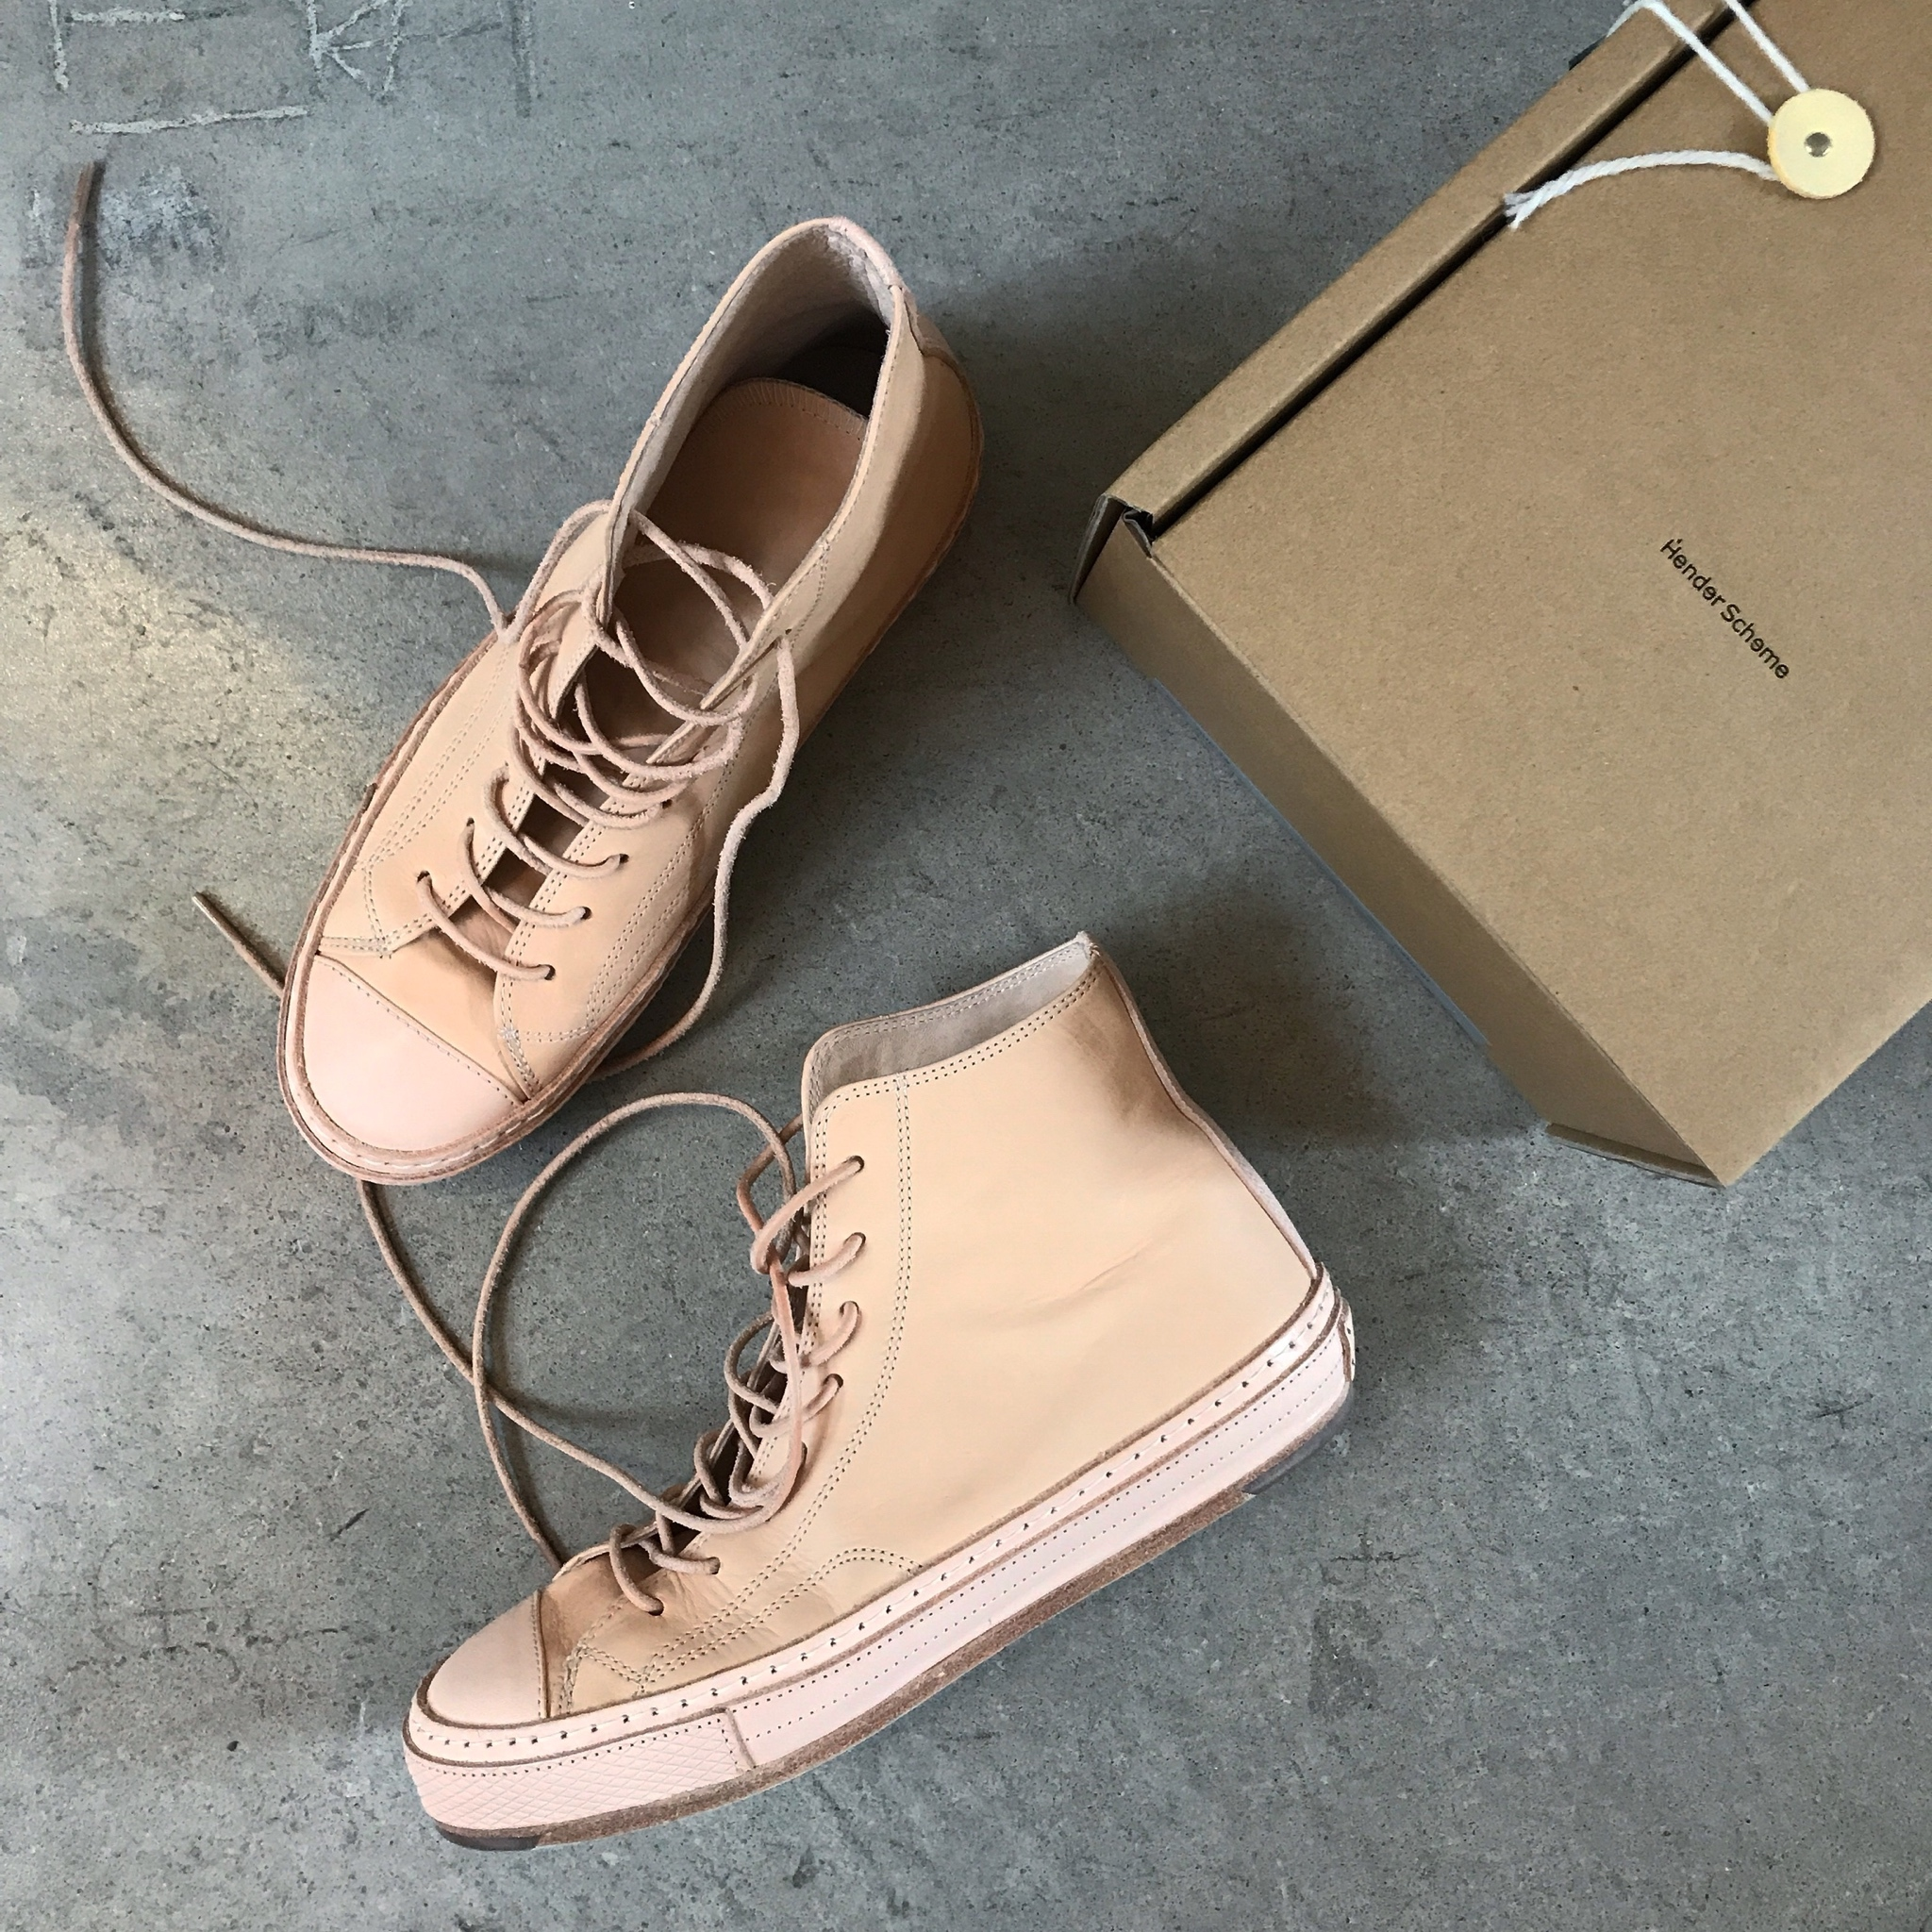 Hender Scheme - manual industrial products 19